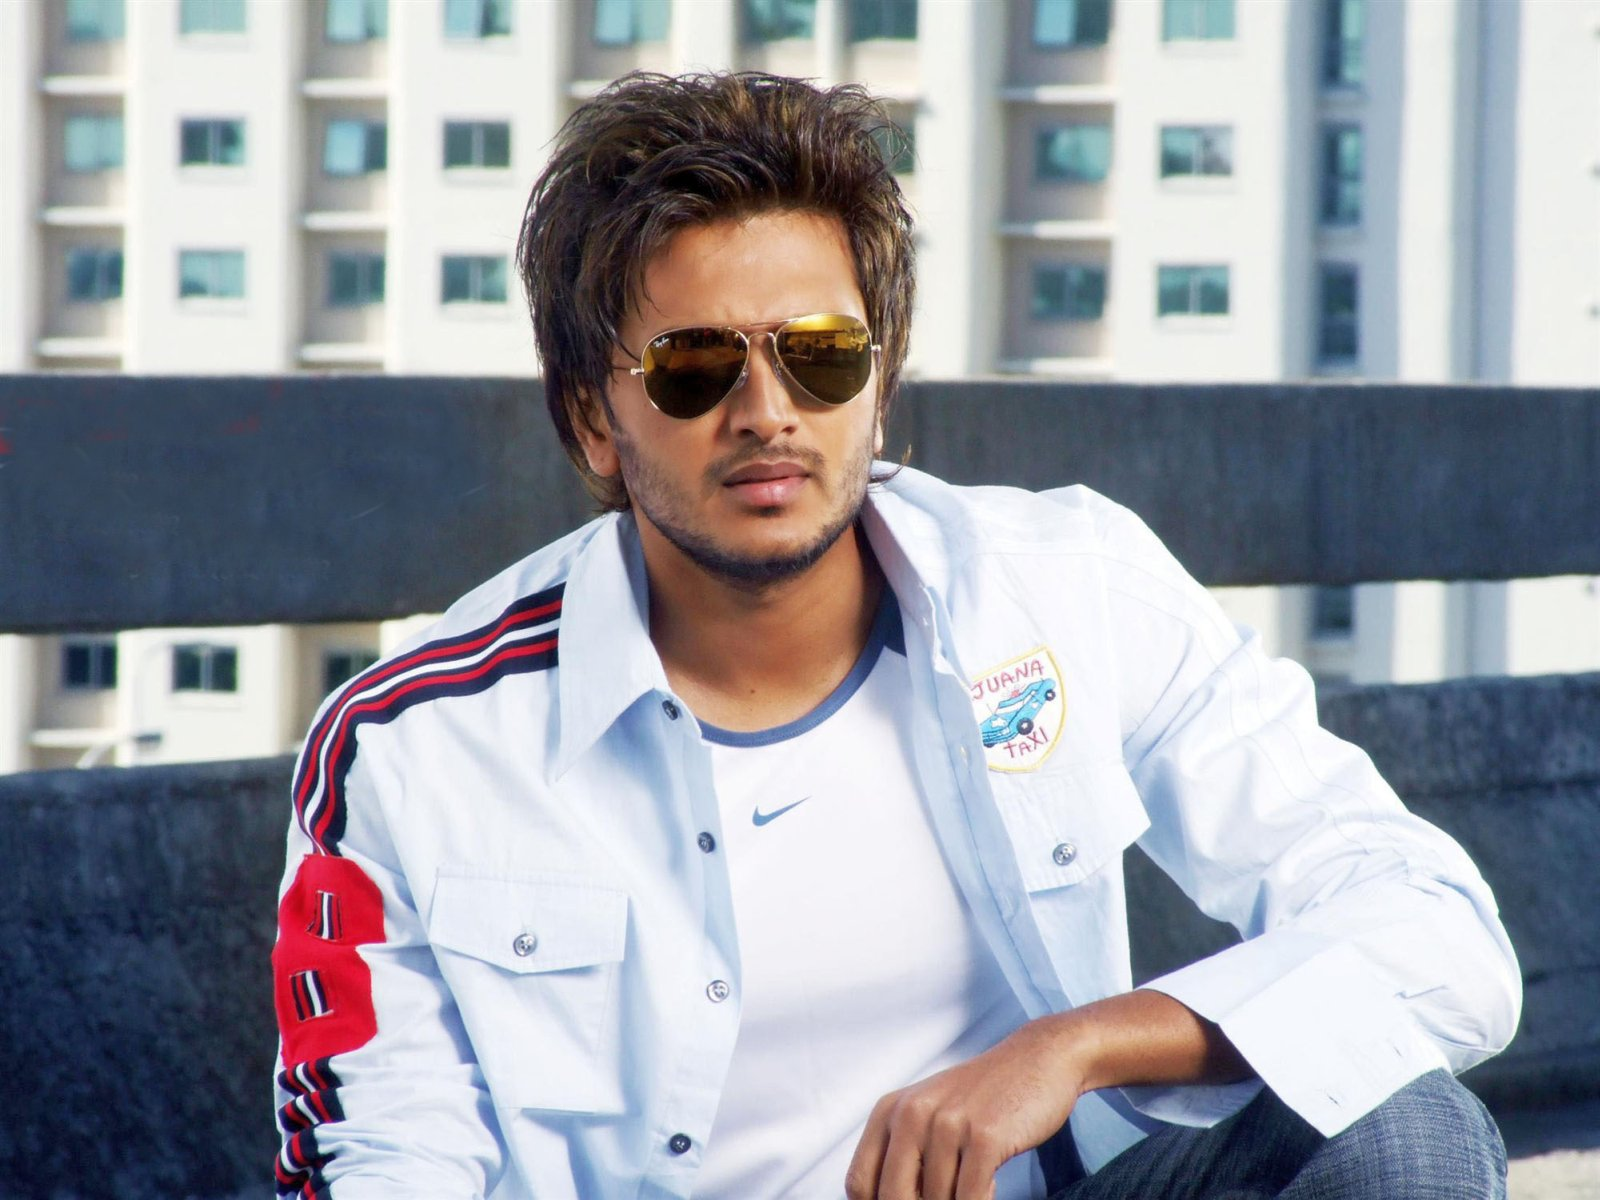 New Hindi Movei 2018 2019 Bolliwood: Upcoming Movies Of Riteish Deshmukh 2016-2017 With Release